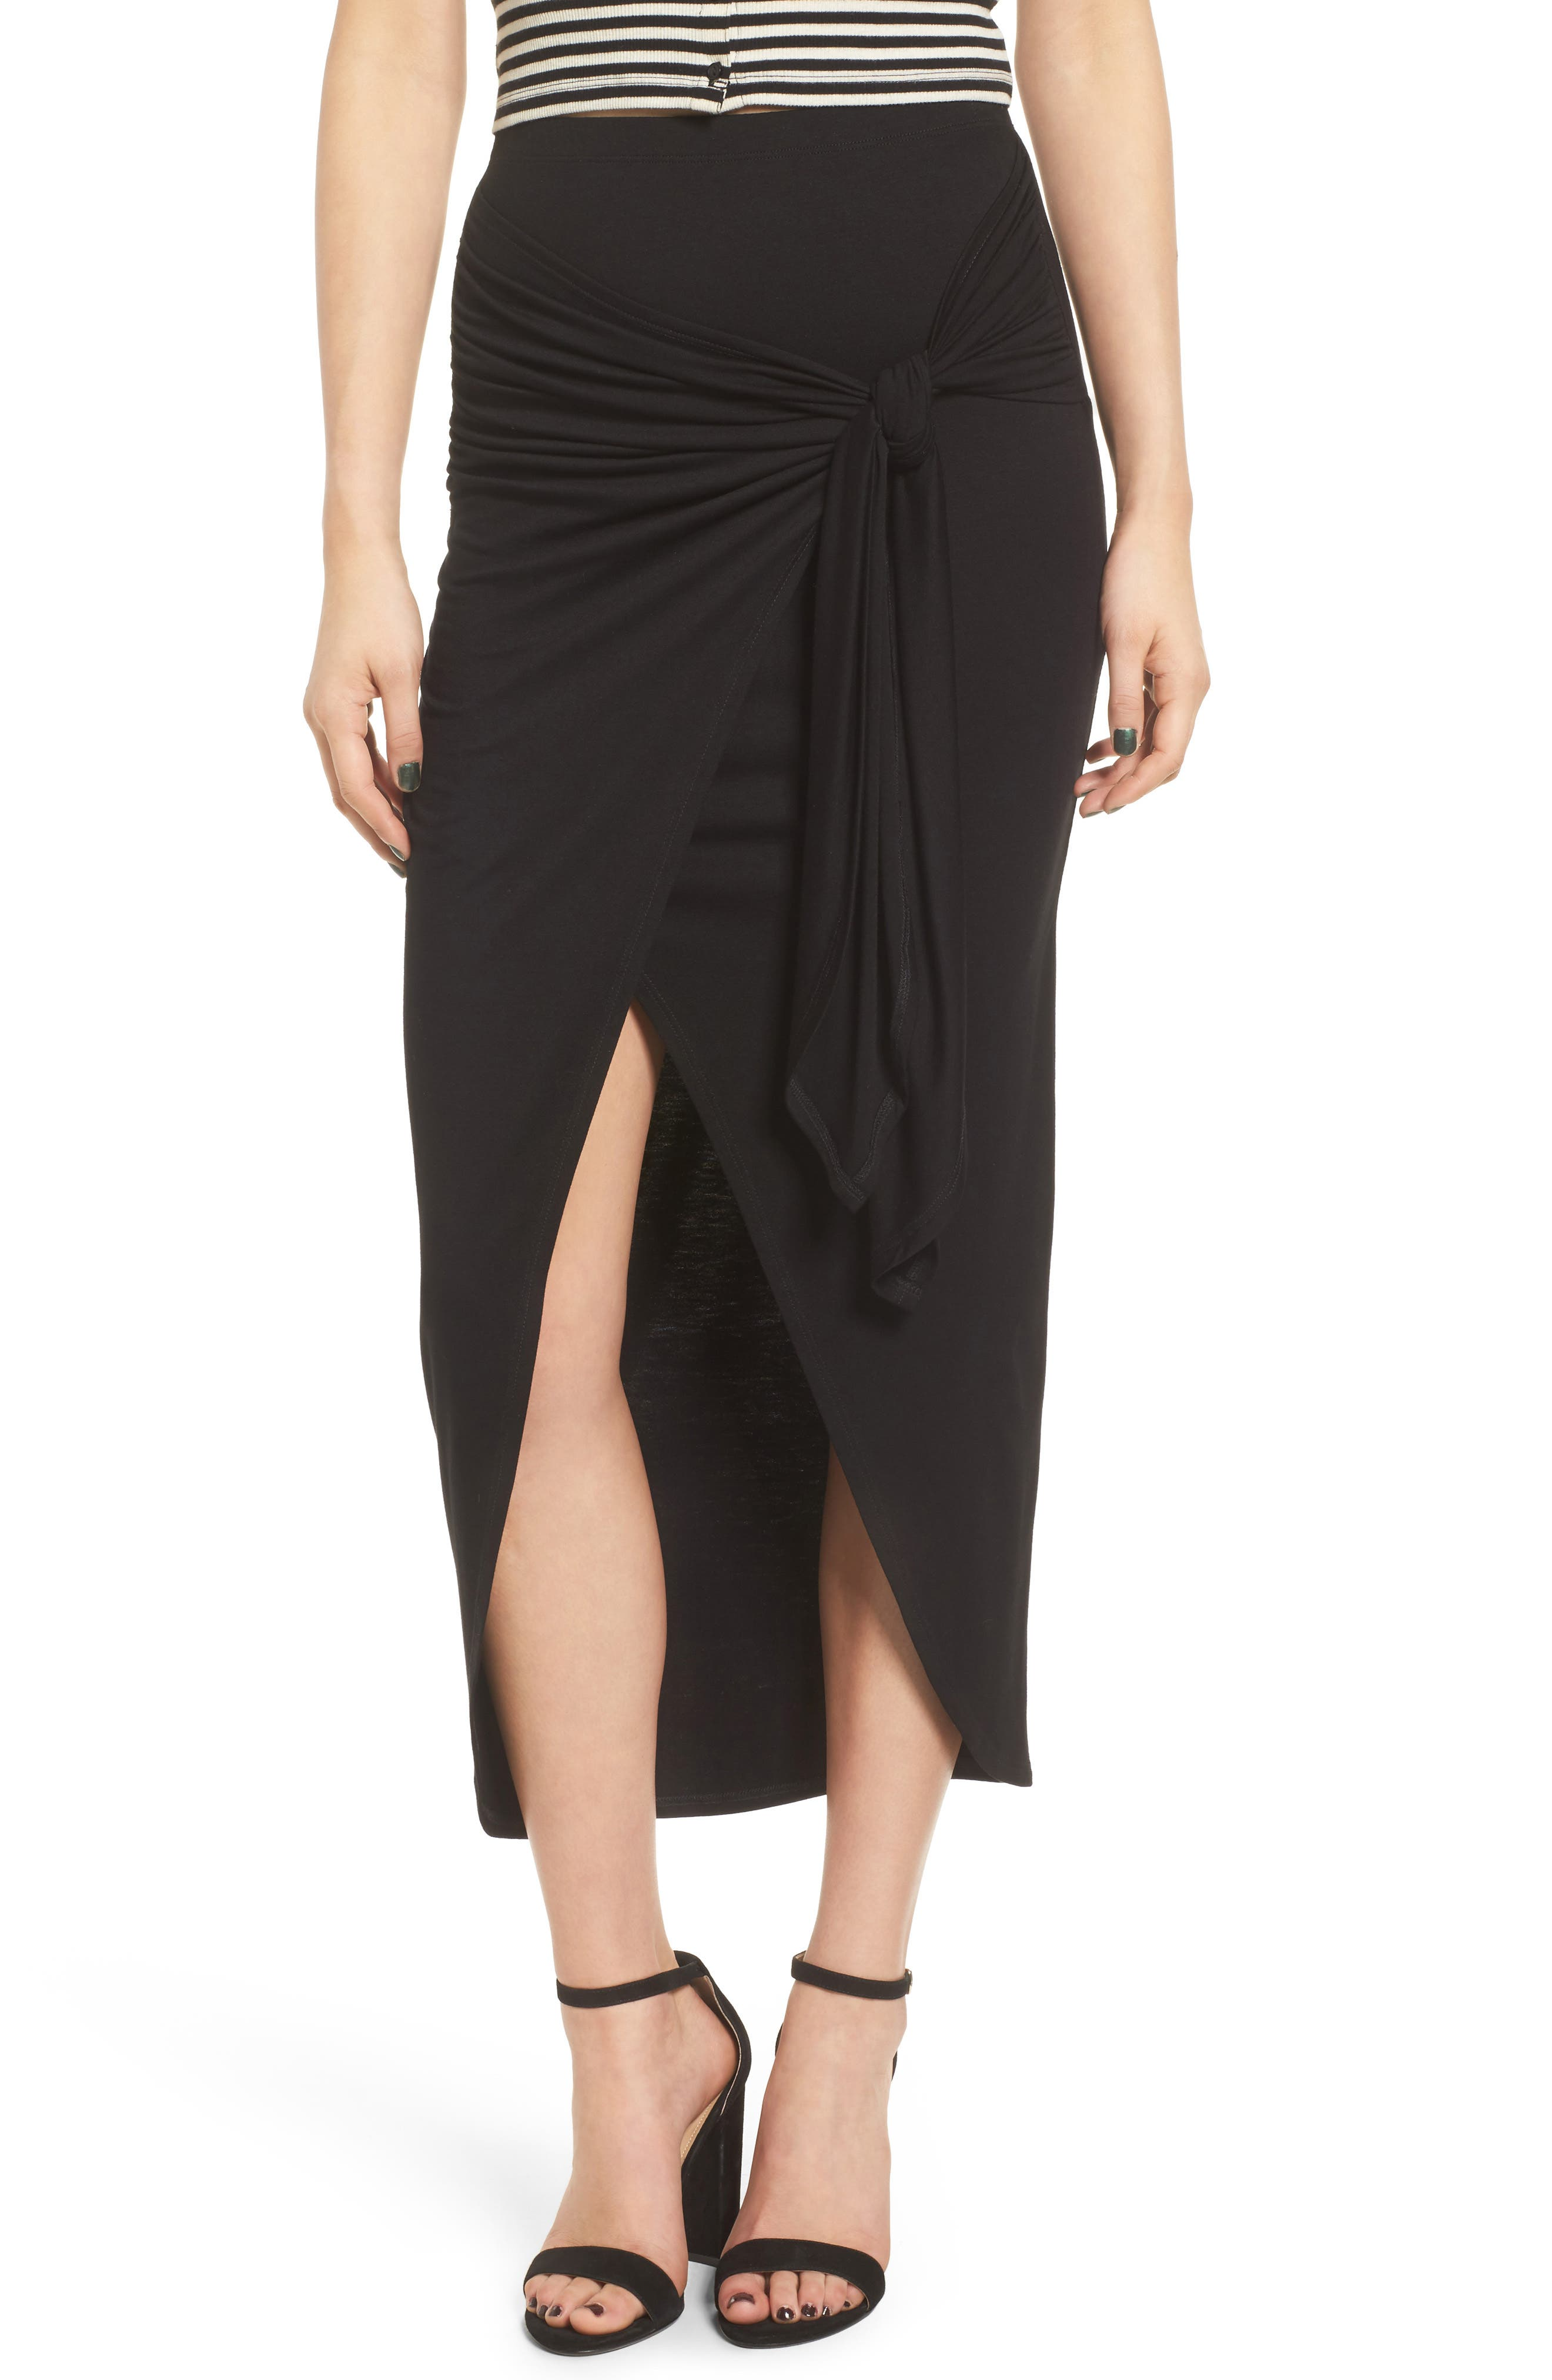 Alternate Image 1 Selected - Soprano Knotted Surplice Midi Skirt